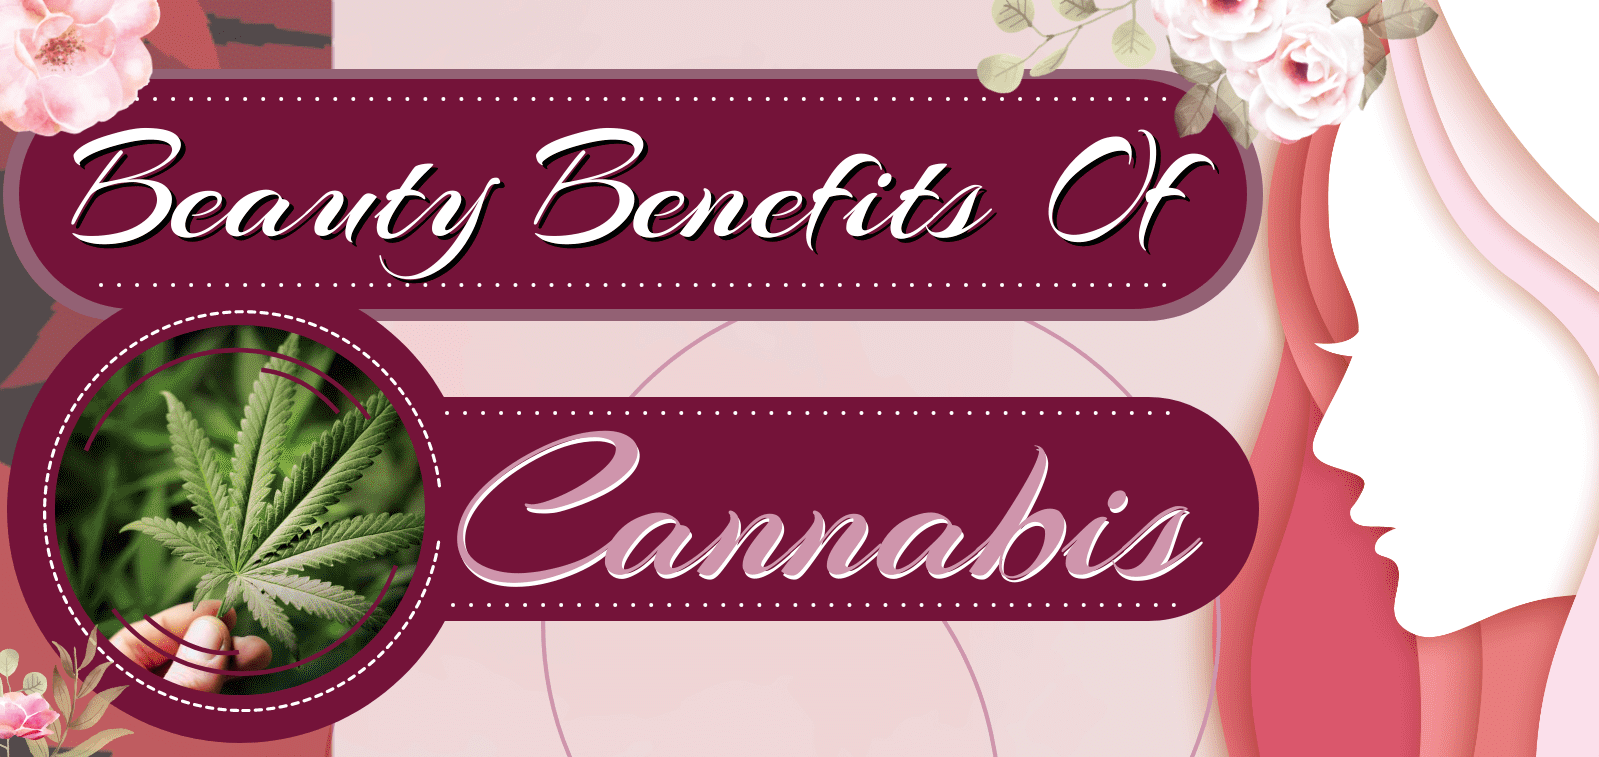 Beauty Benefits of Cannabis